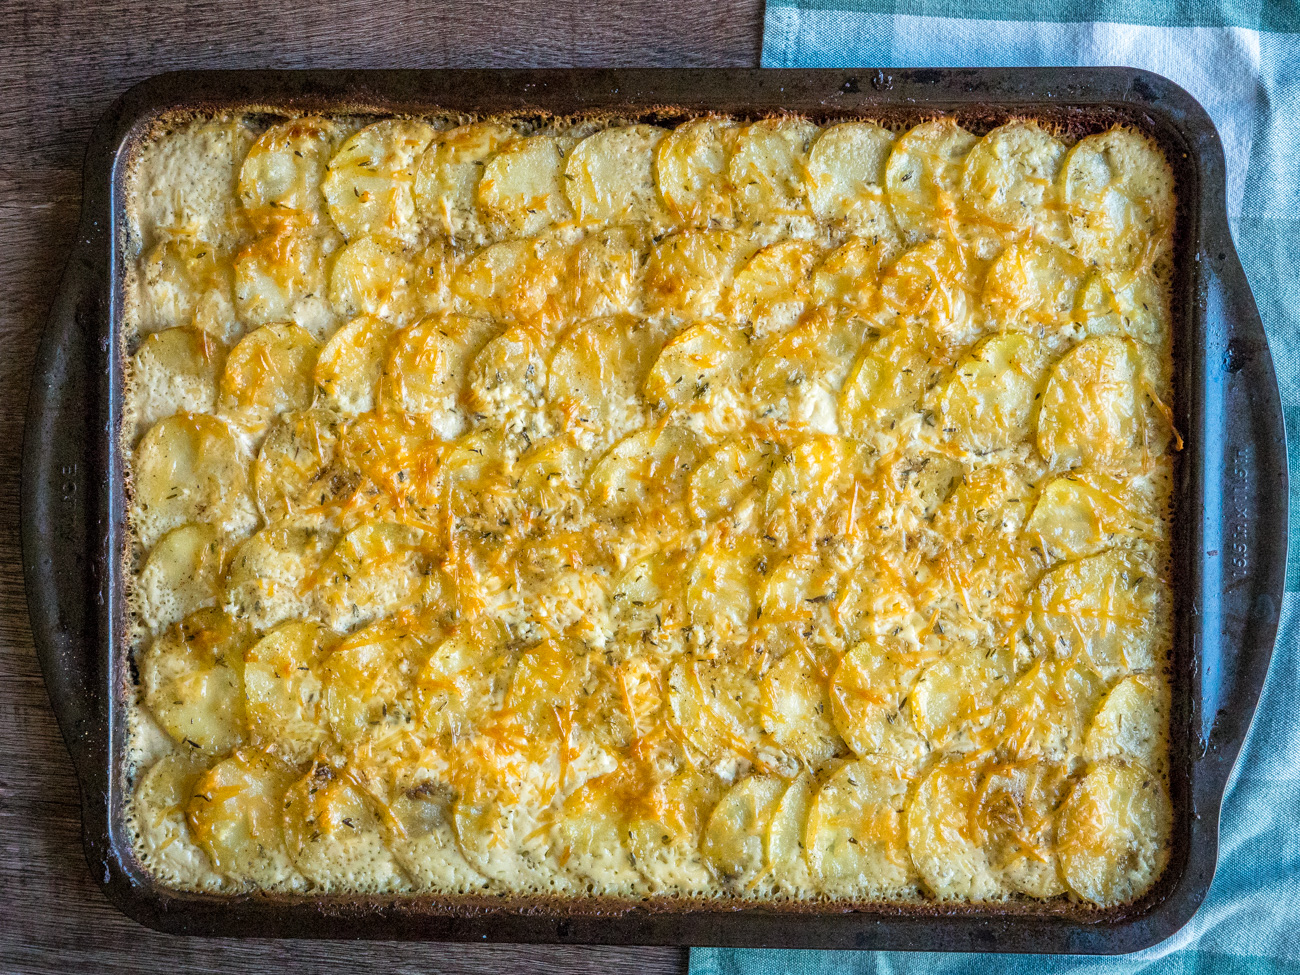 Cover with foil and bake for 20 minutes or until potatoes are fork tender. Remove from oven and remove foil. Top with the rest of the cheeses and bake uncovered an additional 15-22 minutes or until golden brown on top.